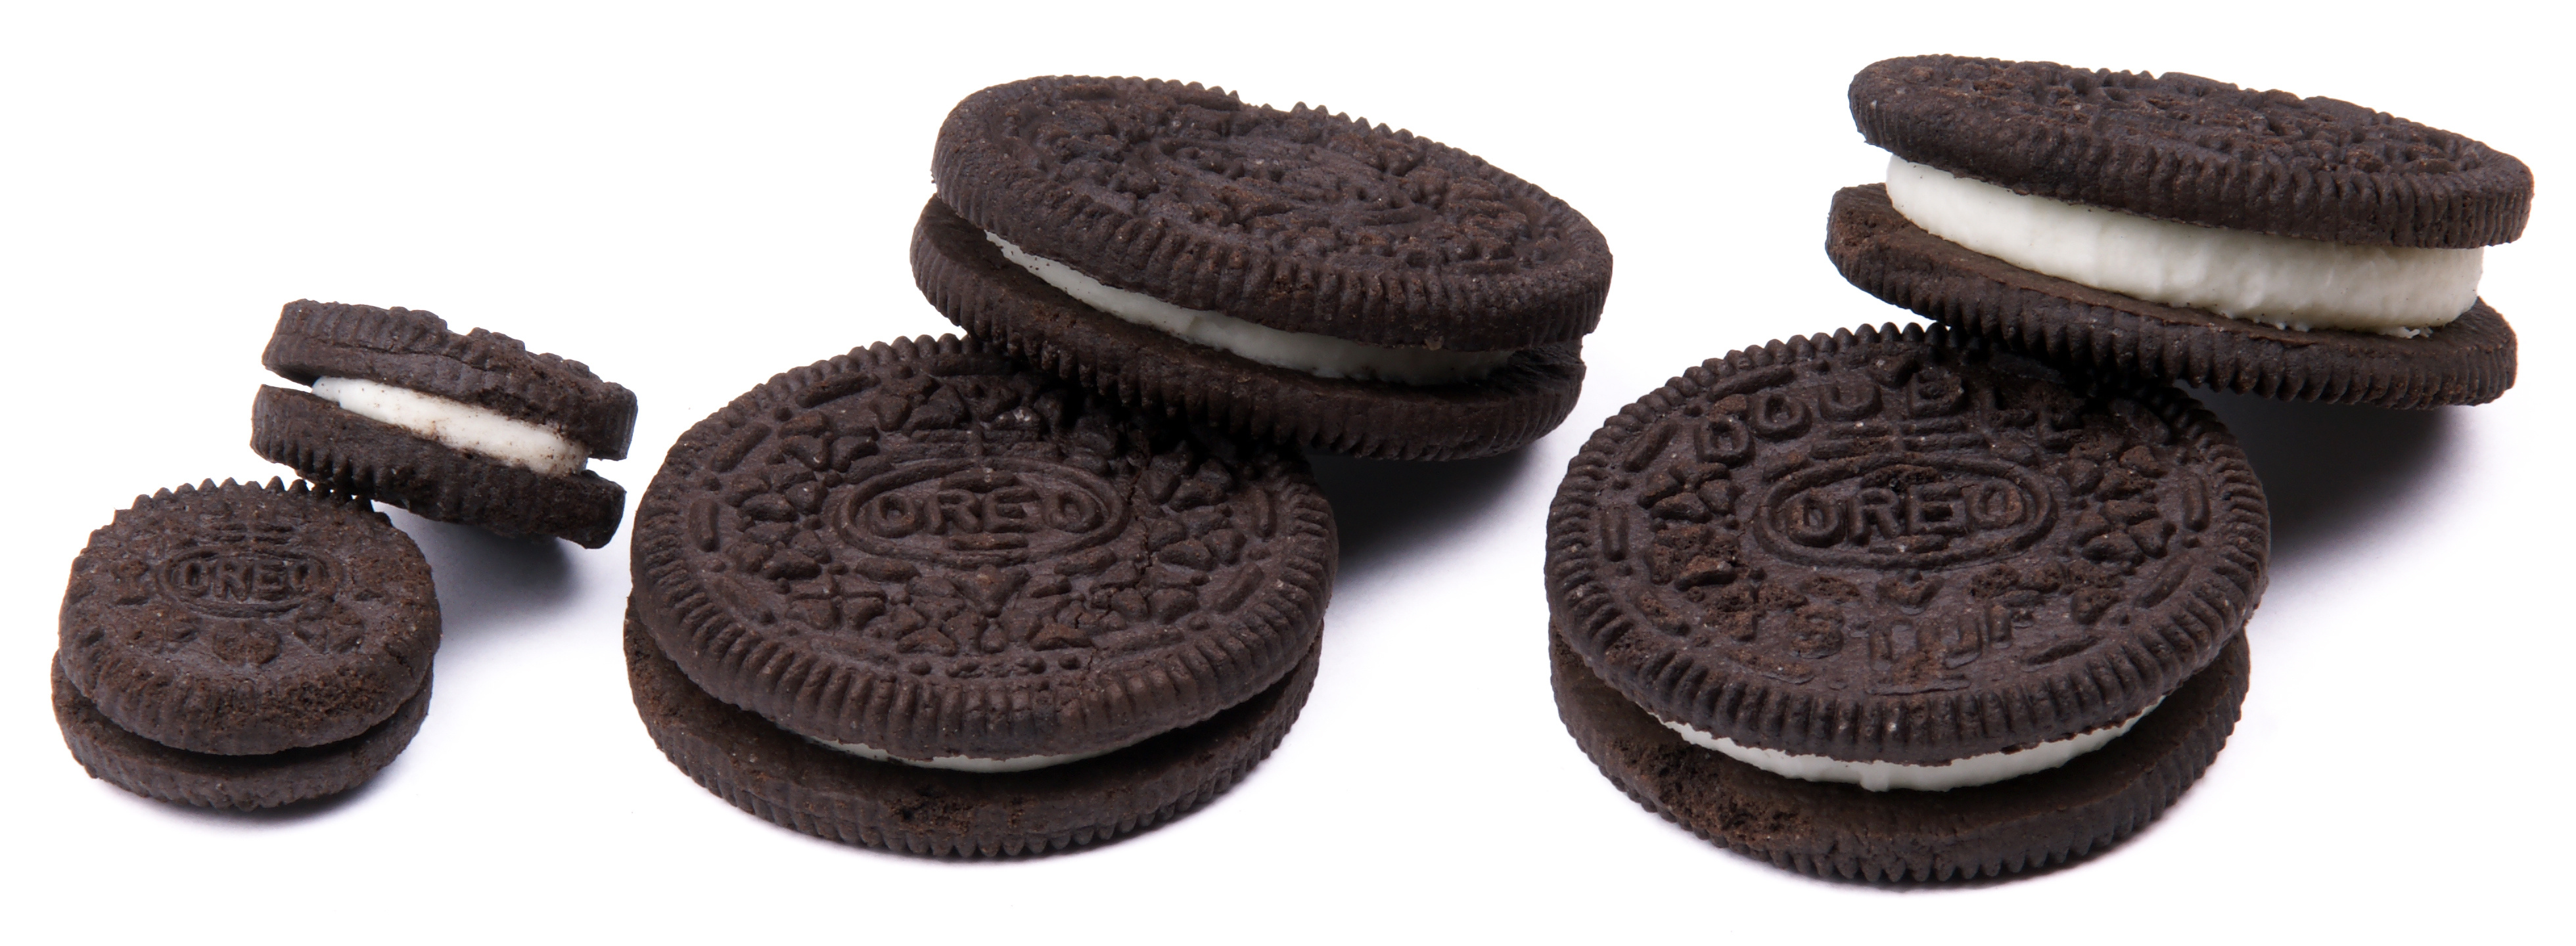 oreo product positioning Mega stuf oreo – released in february 2013, the mega stuf variety is similar to double stuf, but with even more white crème filling they come in both chocolate and golden wafer varieties oreo thins – introduced in 2015, this is a thin version of the original oreo cookie.